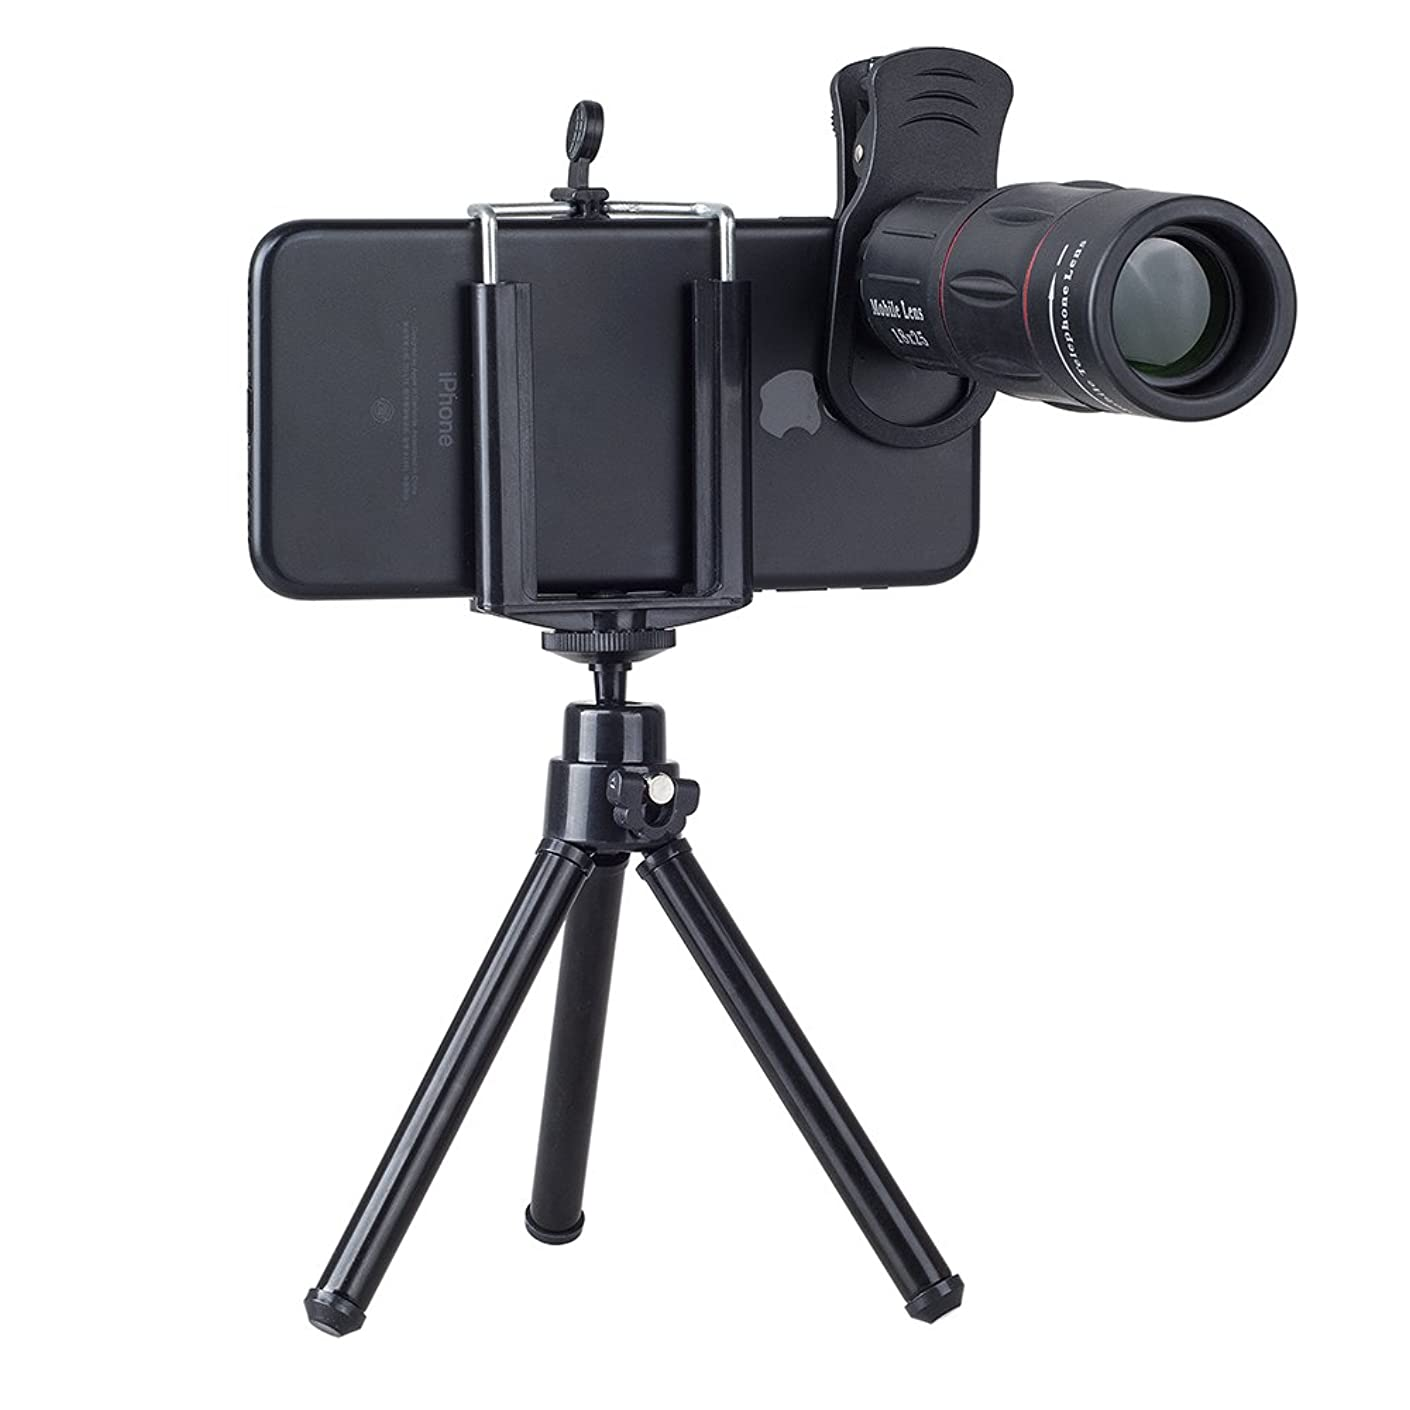 XuBa Telephoto Camera Lens Universal 18X Zoom Telescope Mobile Phone Lens for iPhone Samsung with Tripod